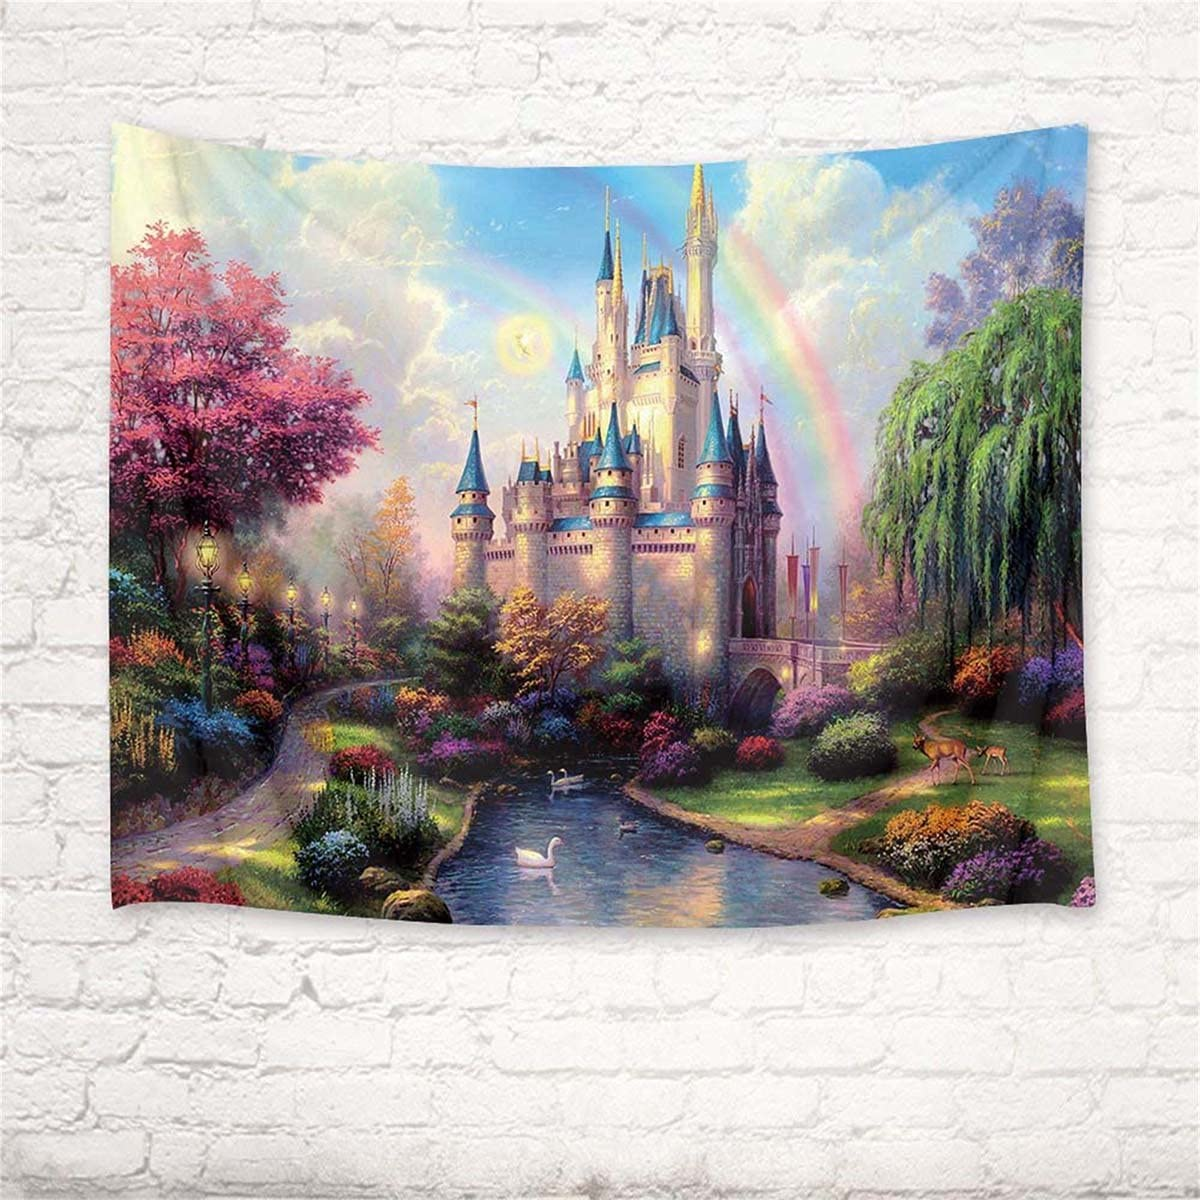 HVEST Castle Tapestry Trees and River in Fantasy Forest Wall Hanging Fairy Tale Tapestries for Kids Bedroom Living Room Dorm Party Wall Decor,92.5Wx70.9H inches